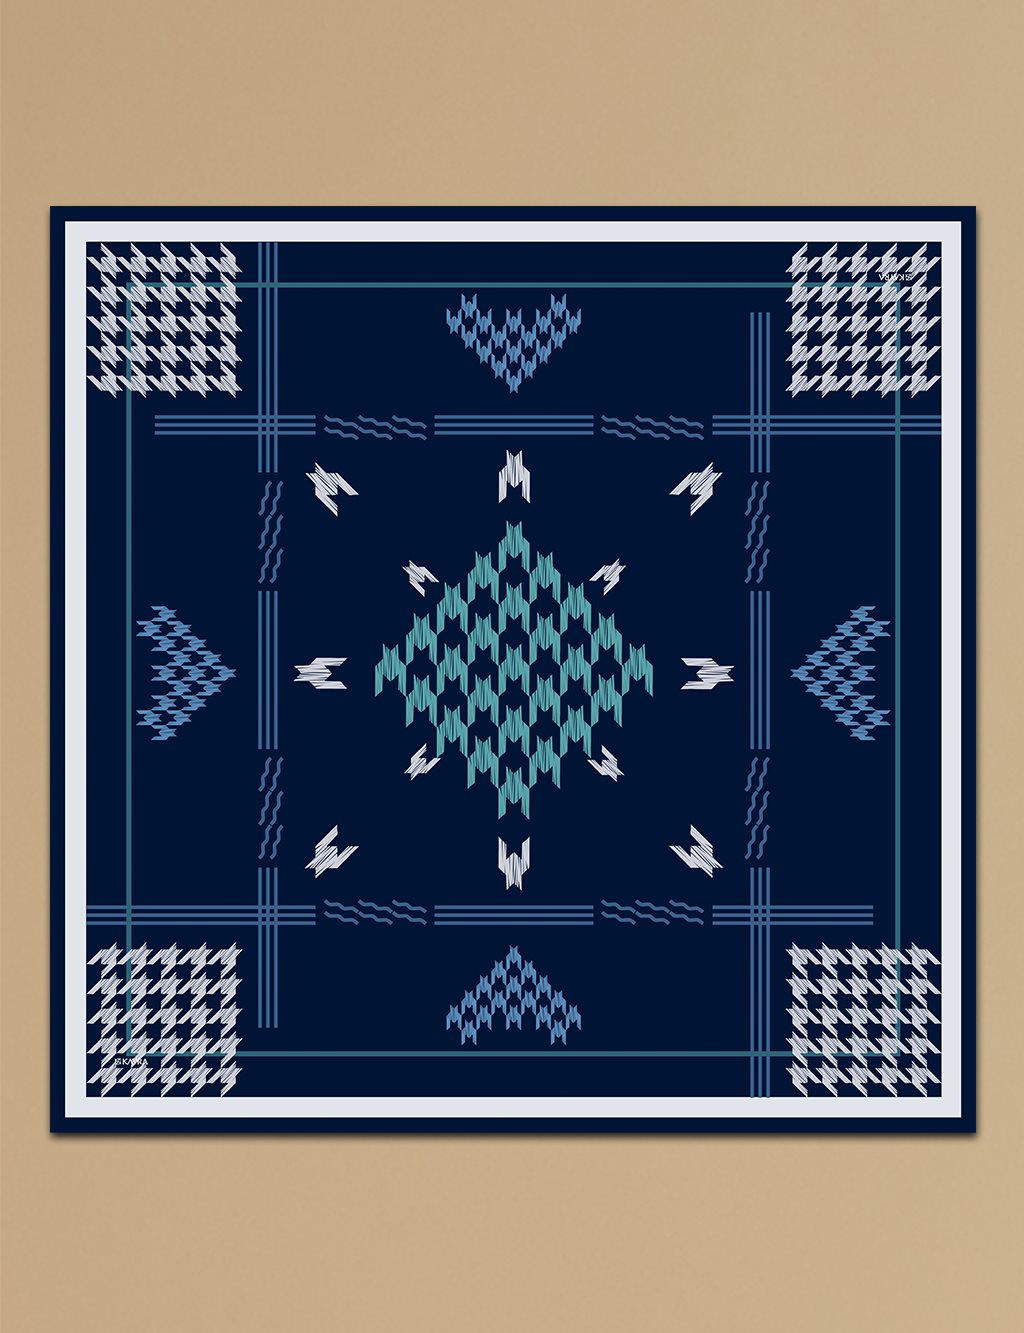 Houndstooth Check Twill Silk Scarf A9 ESP09 Navy